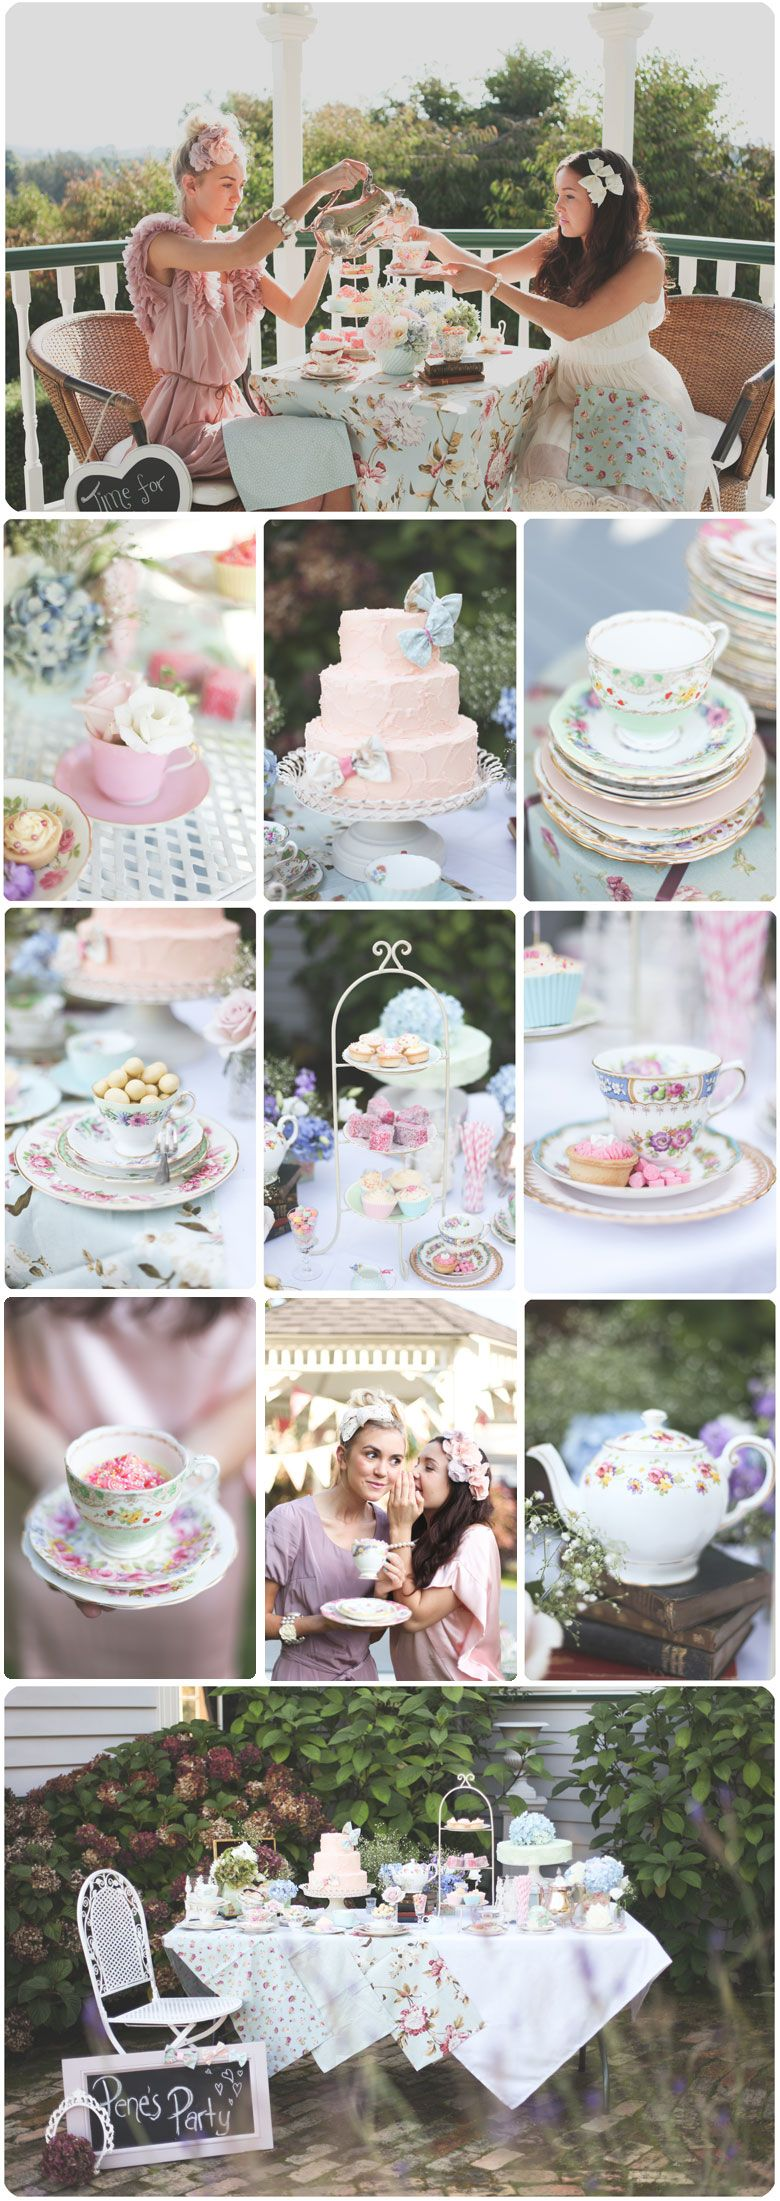 Gorgeous Tea Party Ideas | SOIREE | Pinterest | Afternoon tea ...